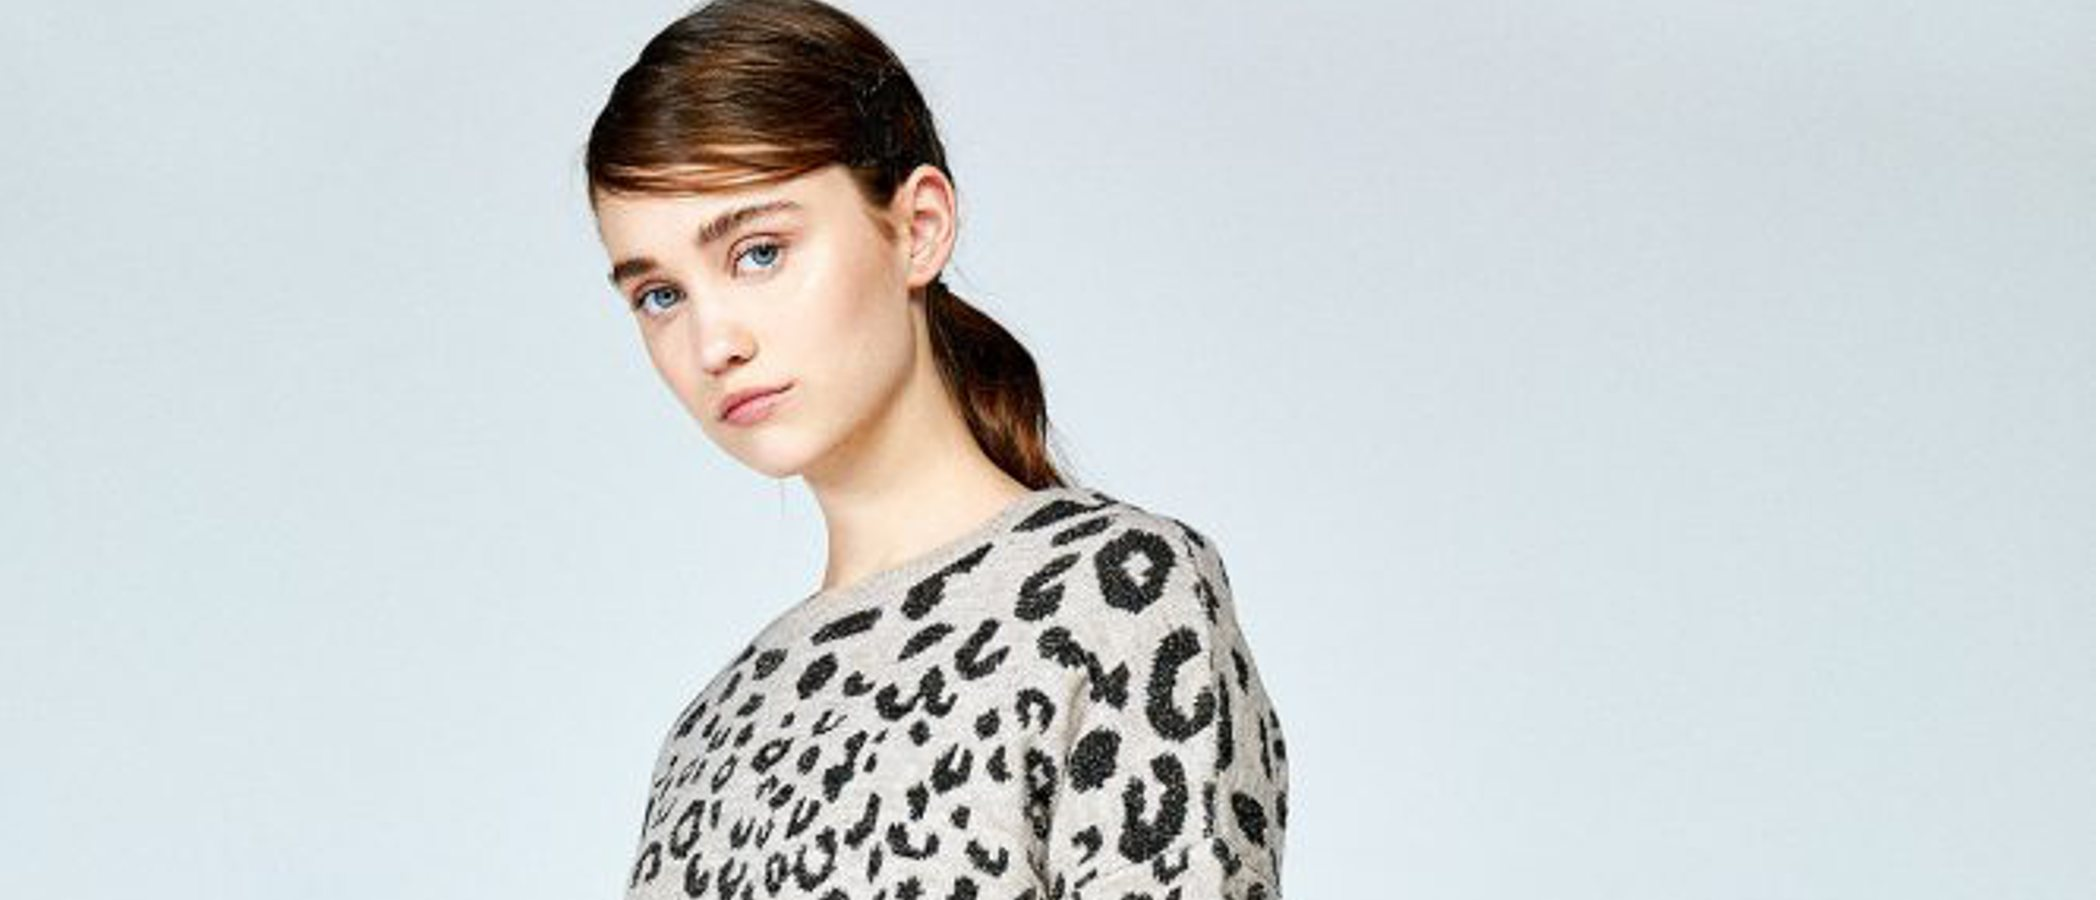 La tendencia del estampado 'animal print' ha llegado a Sfera